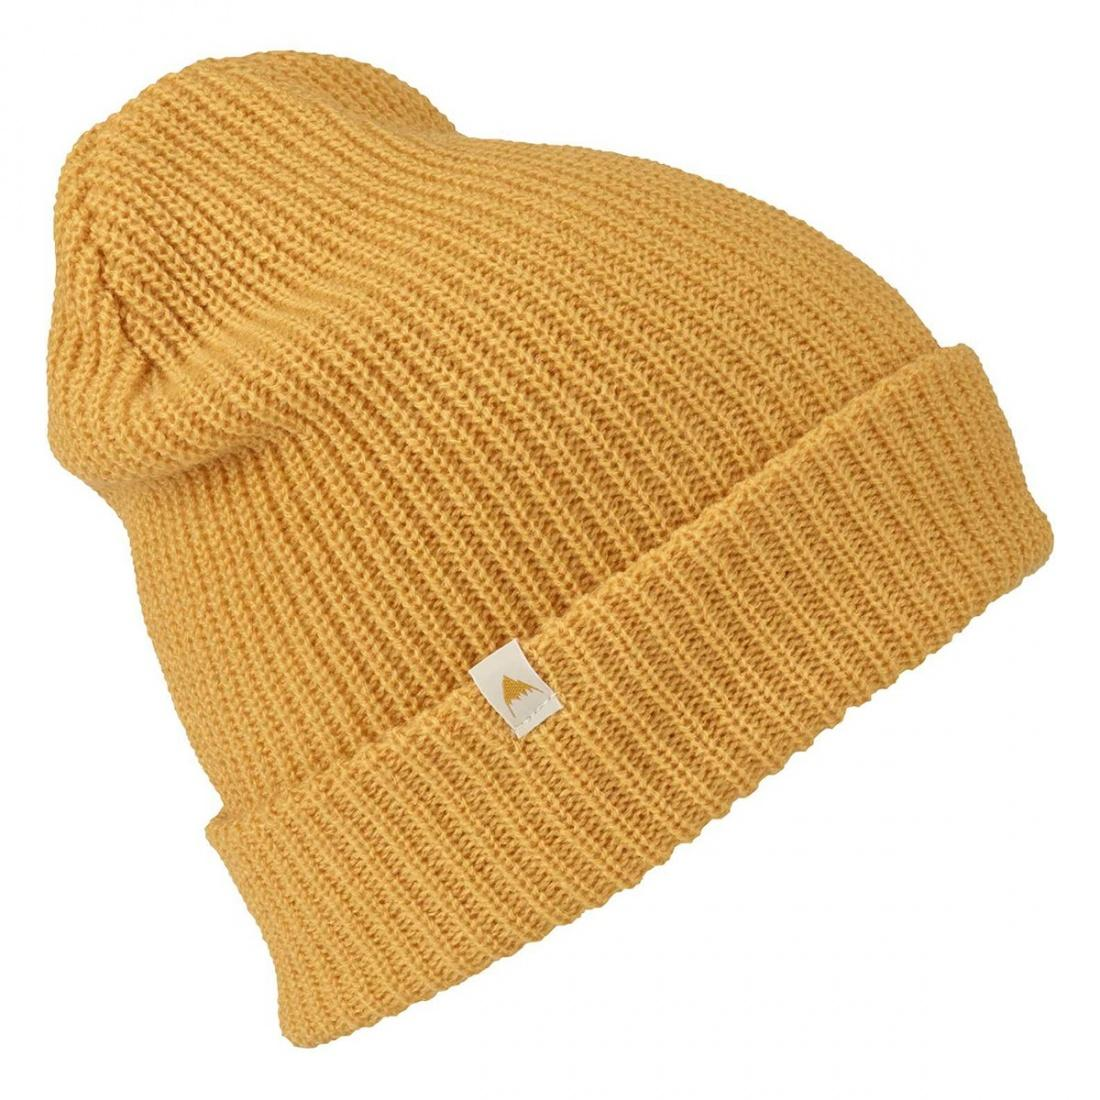 Burton Шапка Burton Truckstop Beanie OCHRE One size шапка globe ray beanie midnight